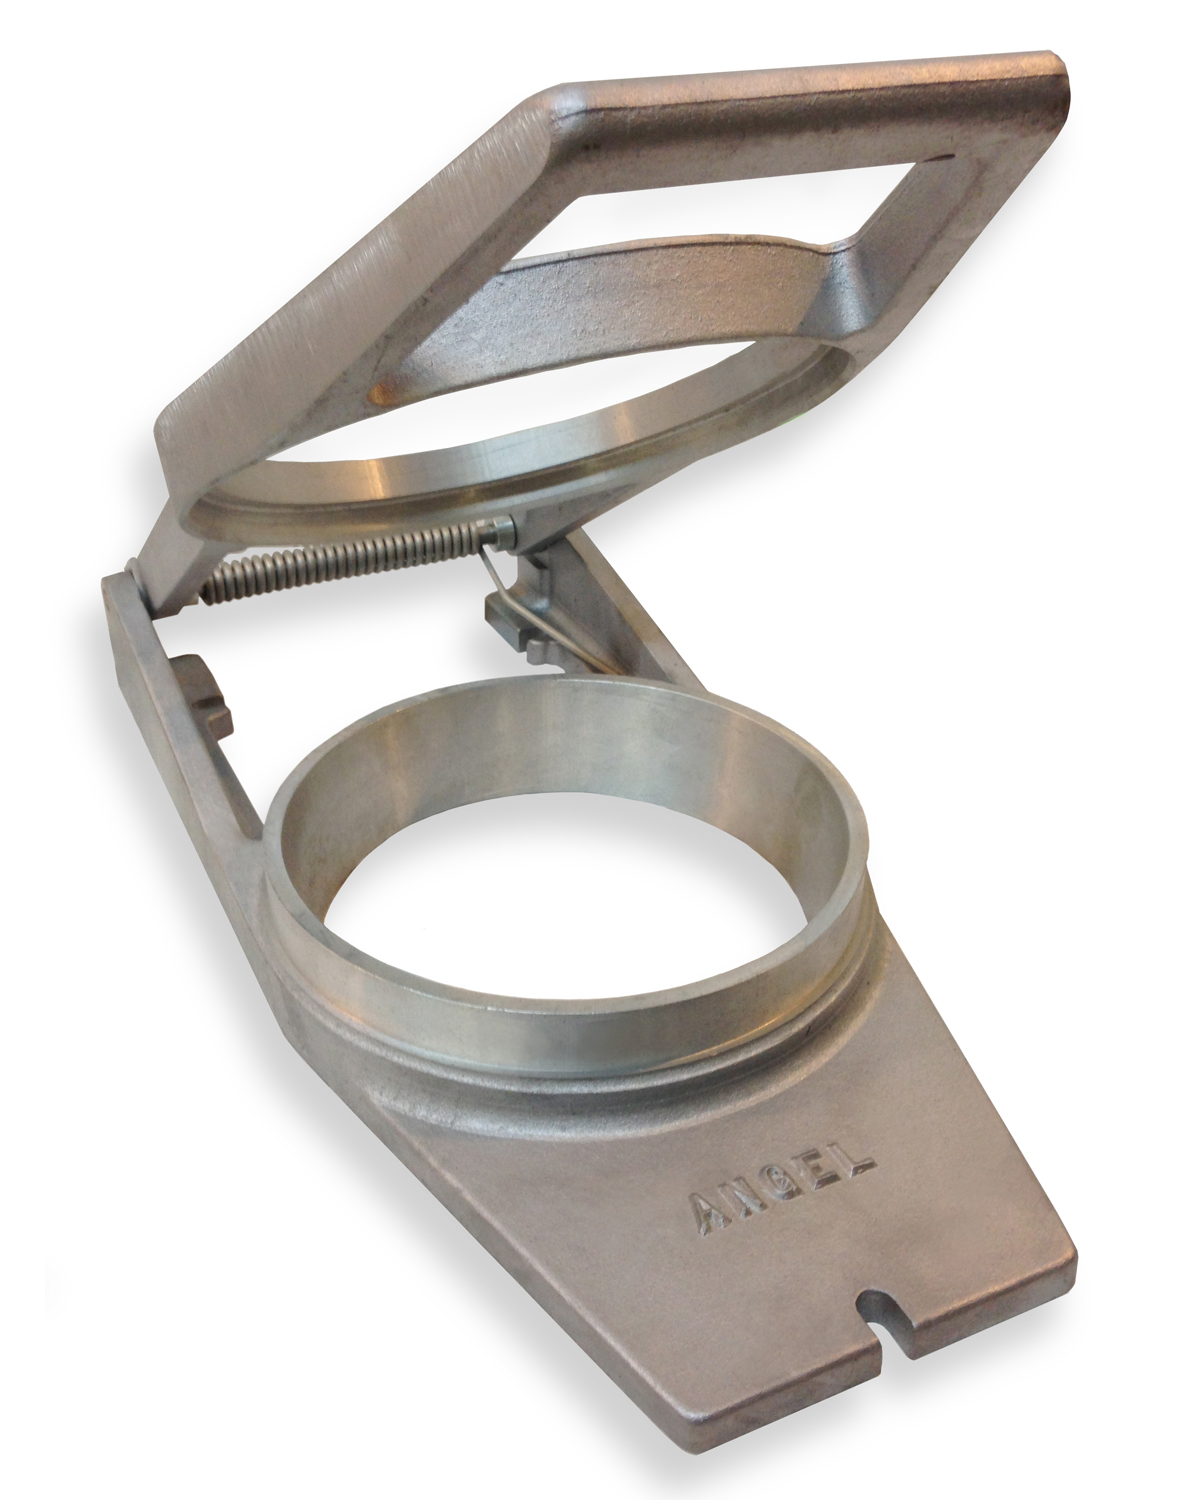 Our Crimpers are available in round and rectangle formats. Stock and custom sizes available.